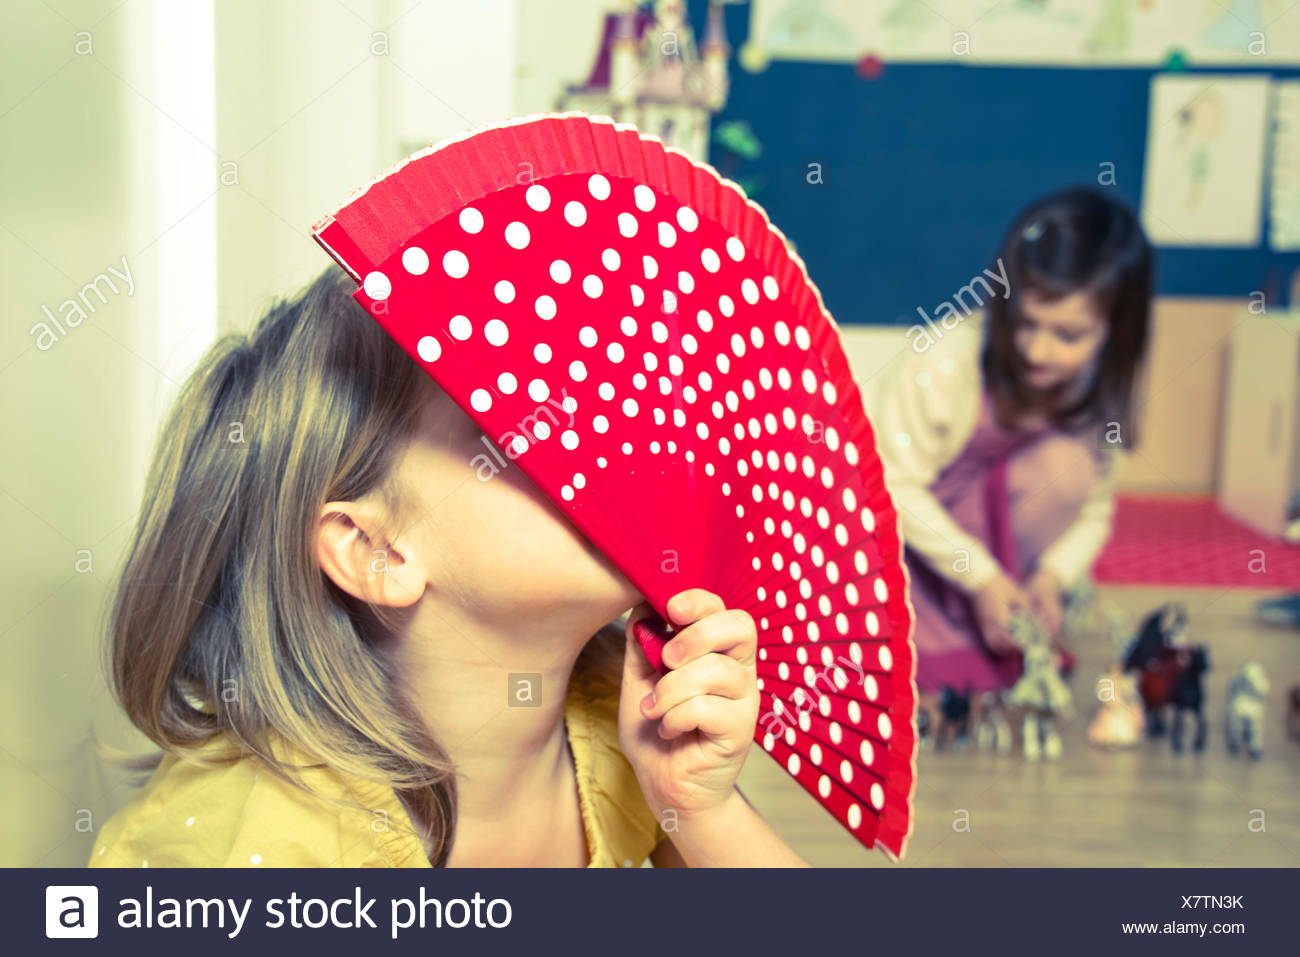 Little girl playing with fan - Stock Image